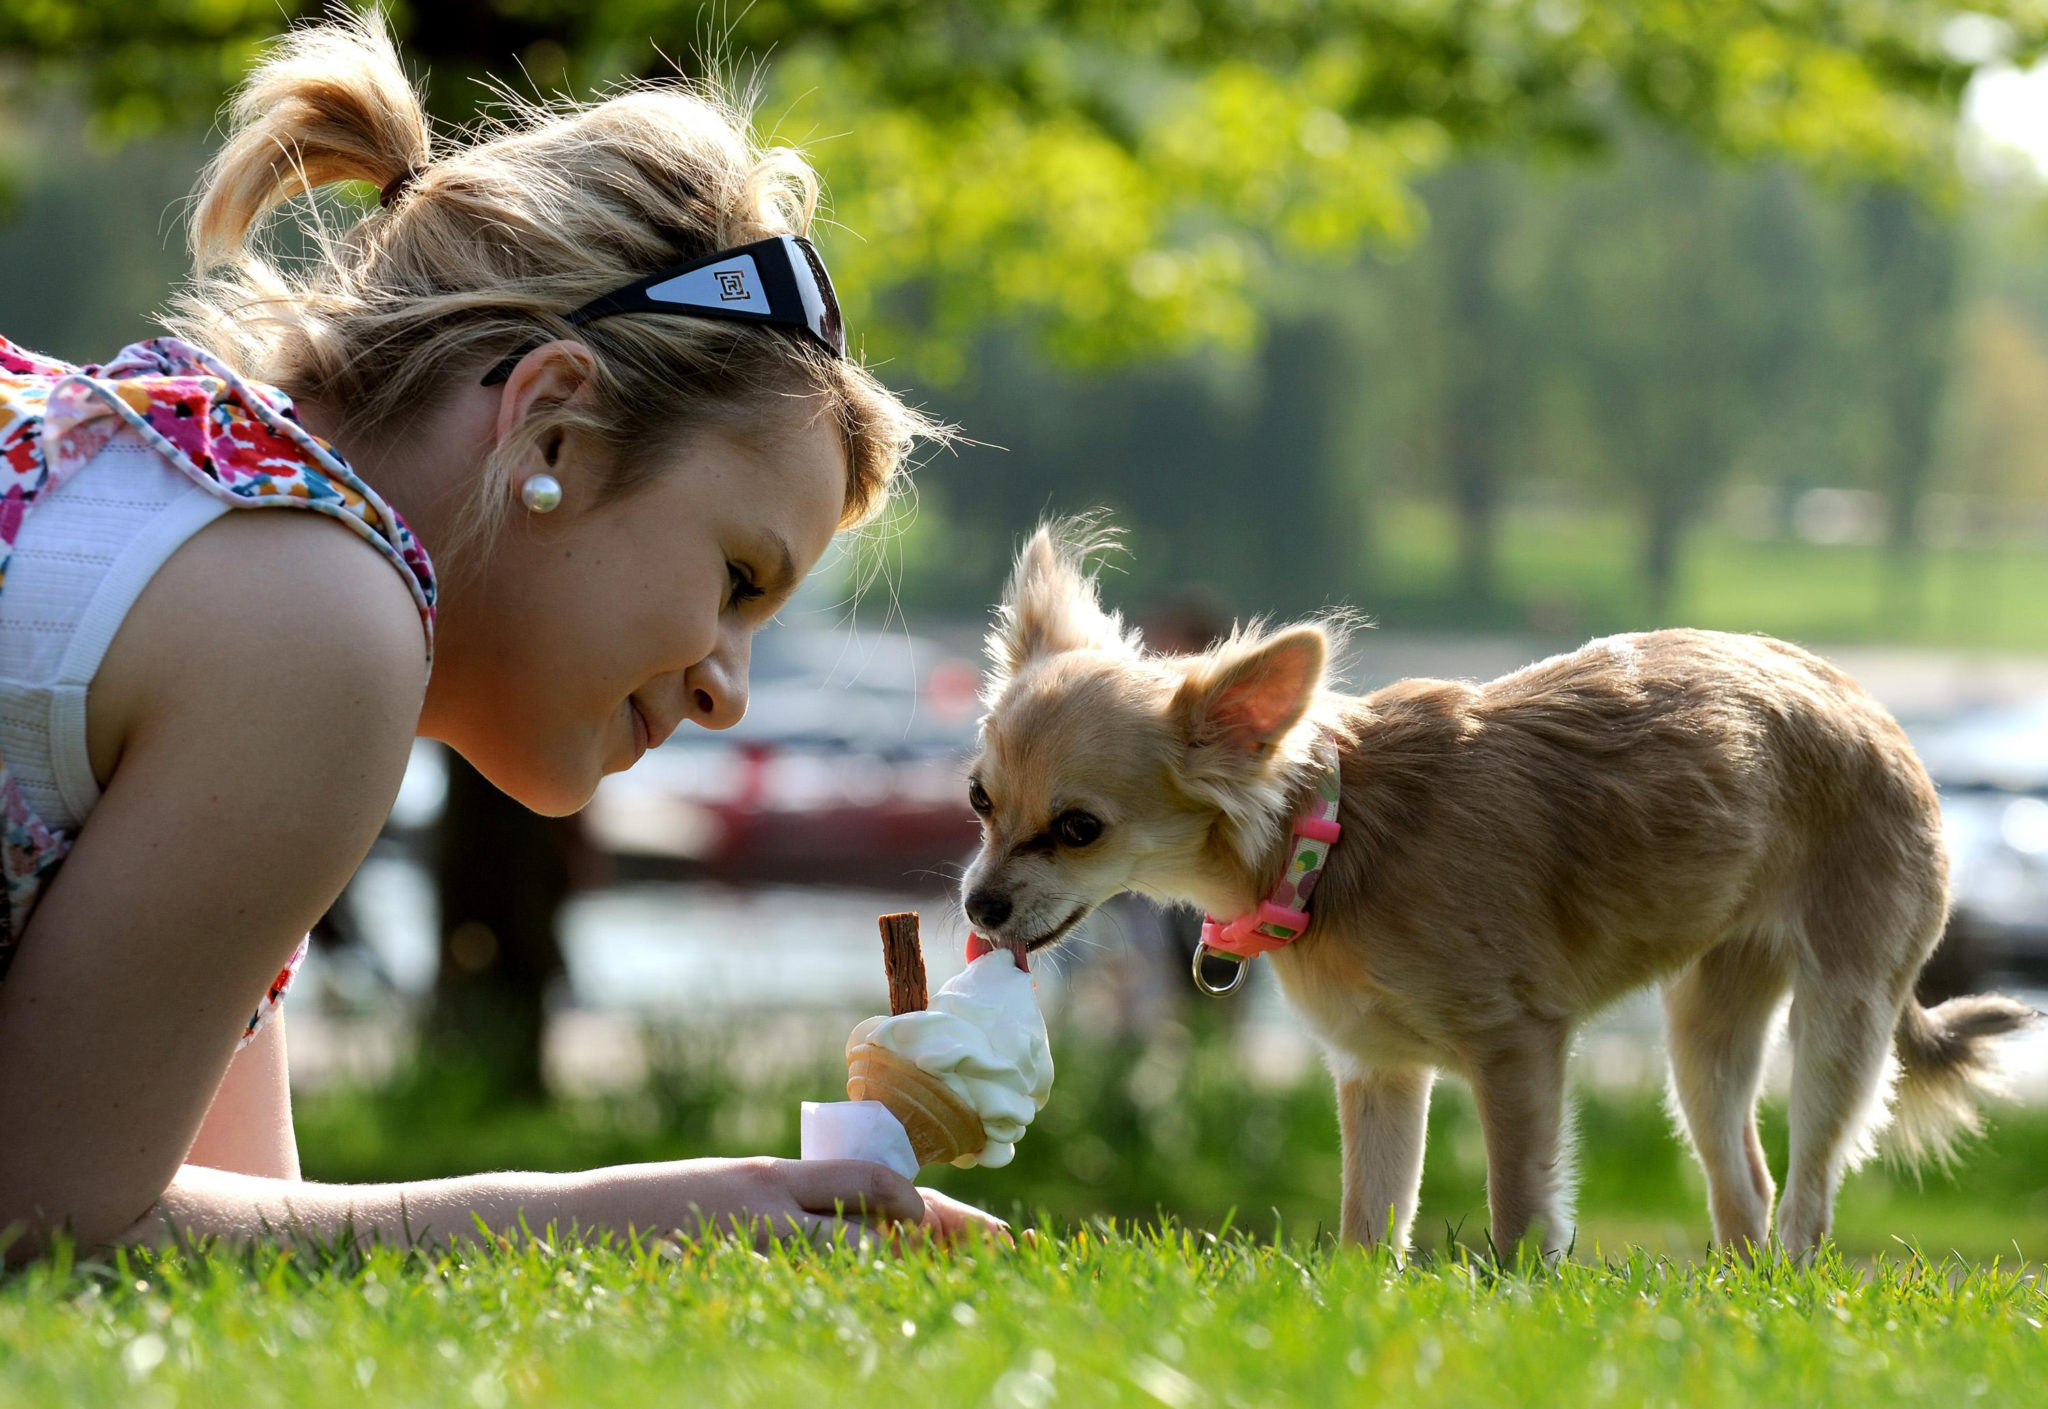 Sophie Parrish and her dog Tia eat an ice cream